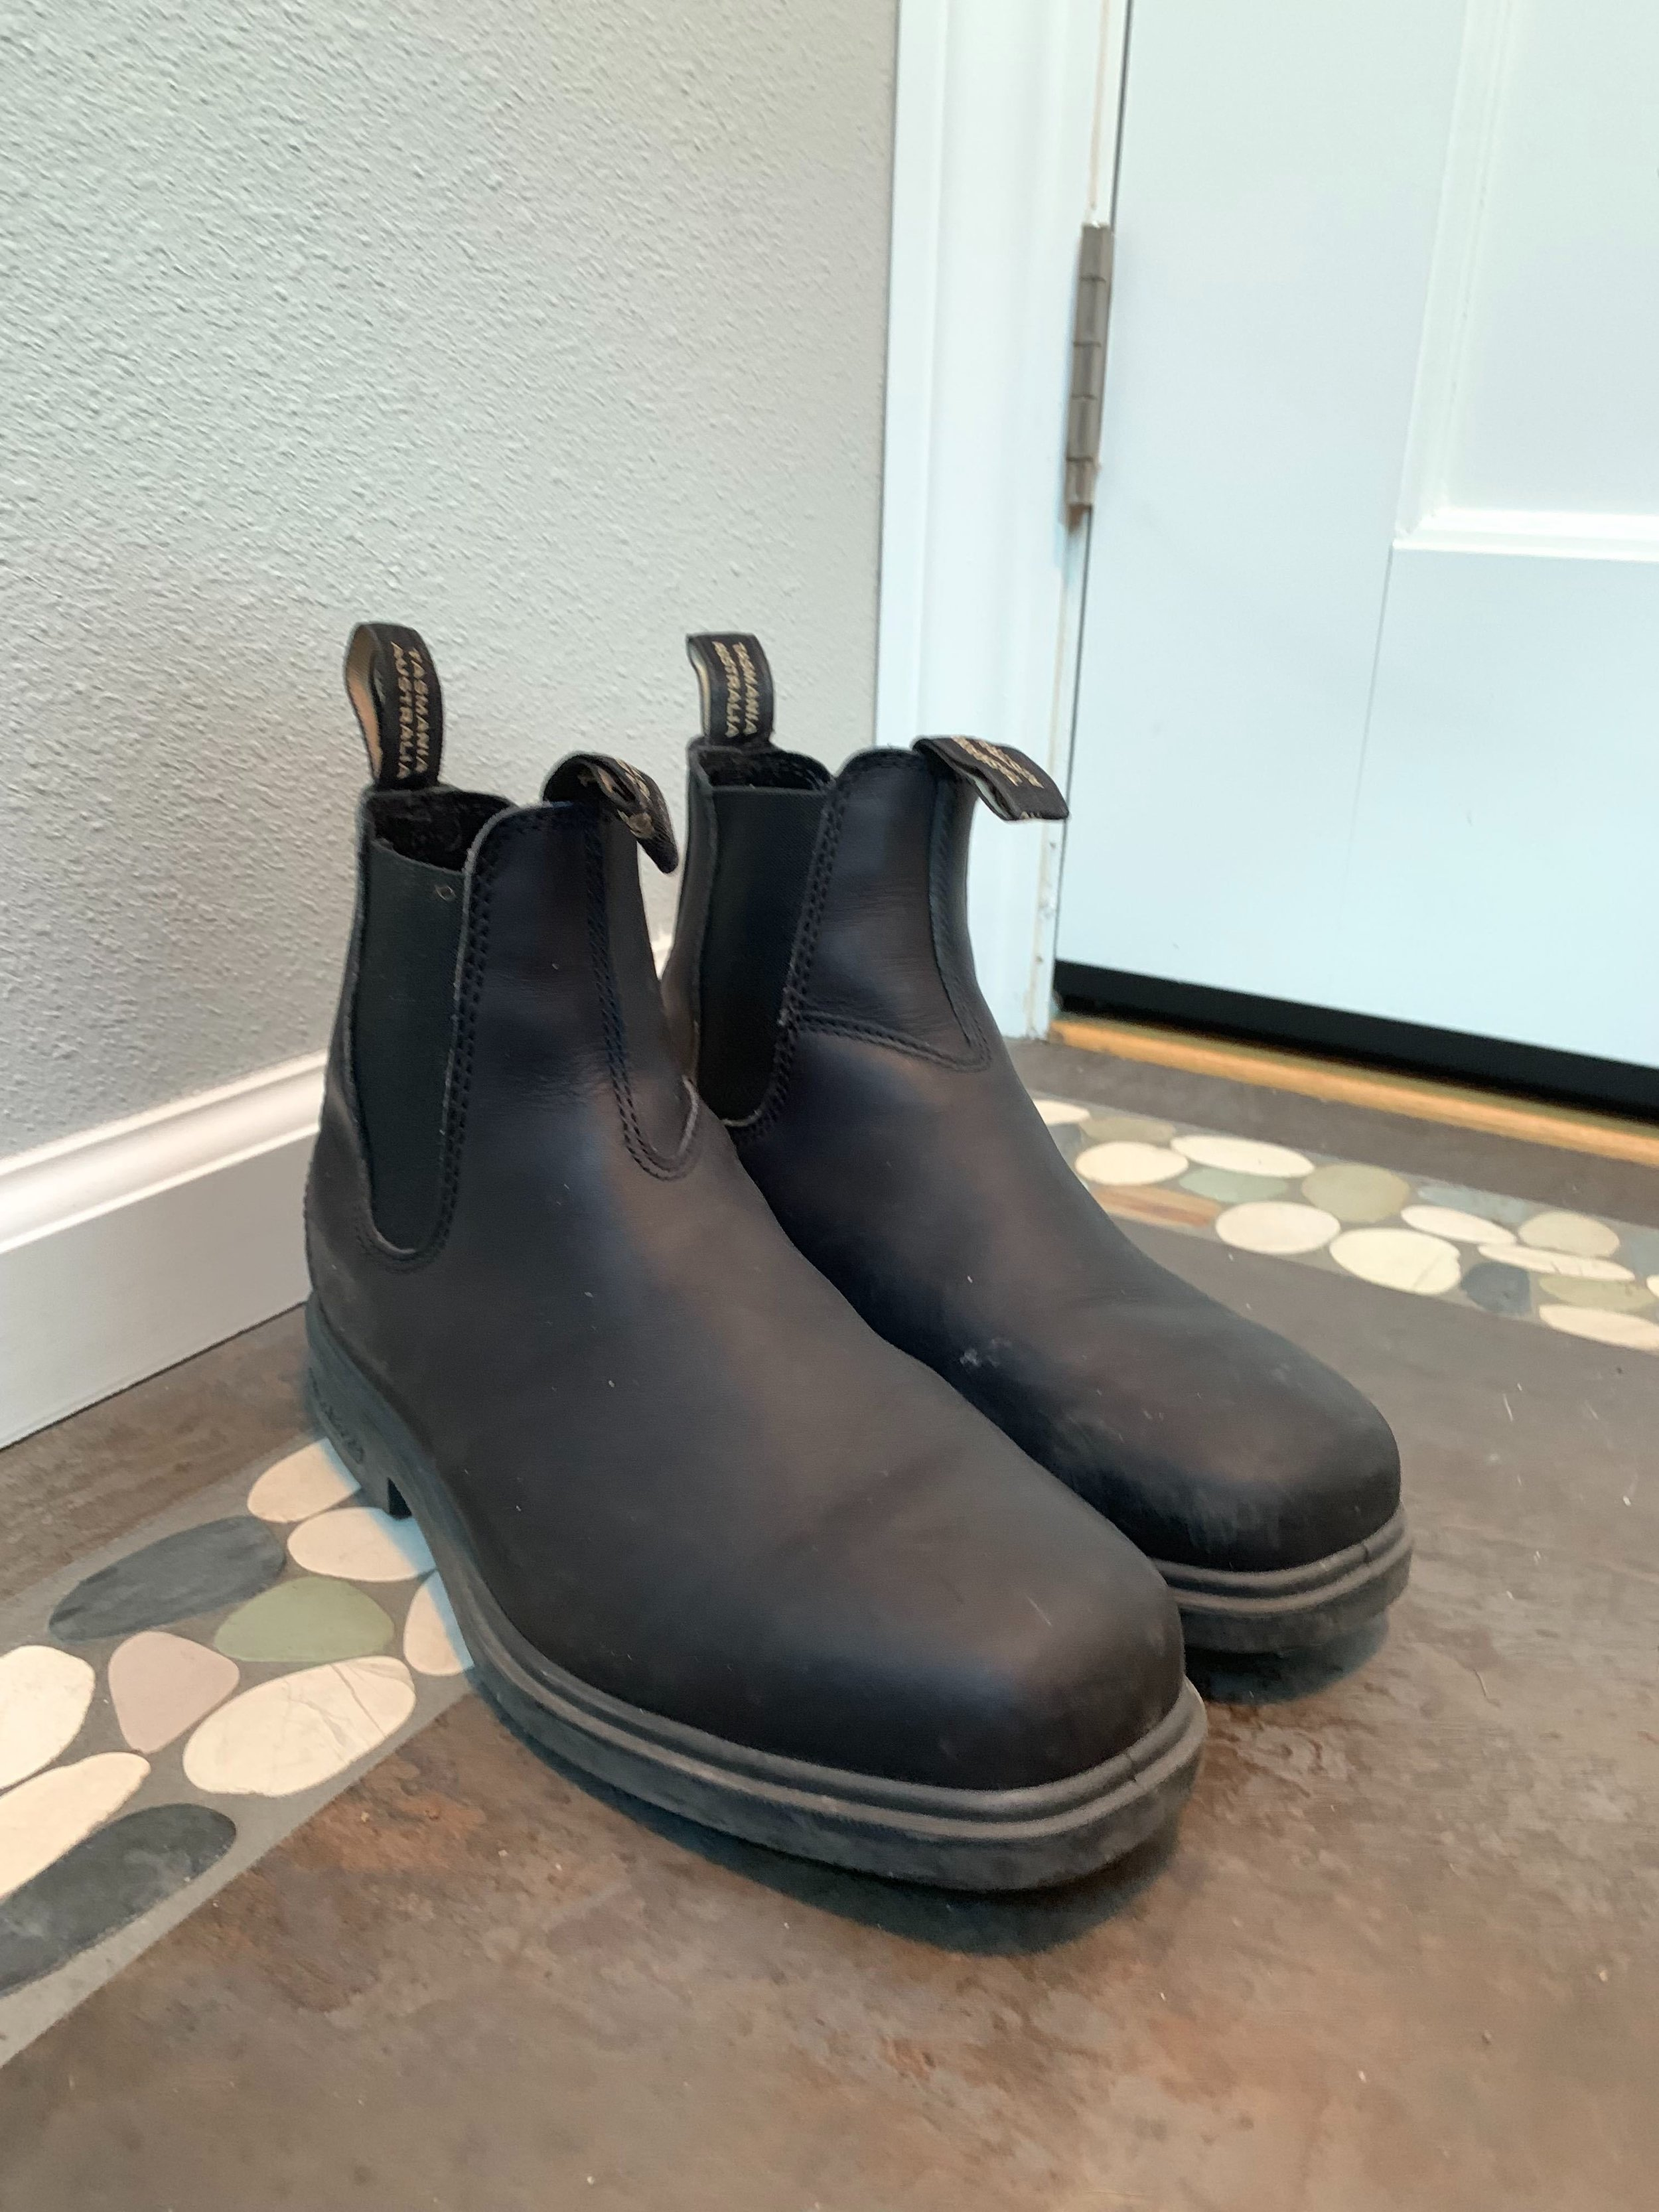 Australian work boots - My husband and I actually *share* a pair of these Blundstone chelsea workboots. You can dress them up, down or take it officially on your walkabout. So comfortable out of the box and easy to put on with front/back tabs. It's also scoring major hip points now as it's taking over SF.